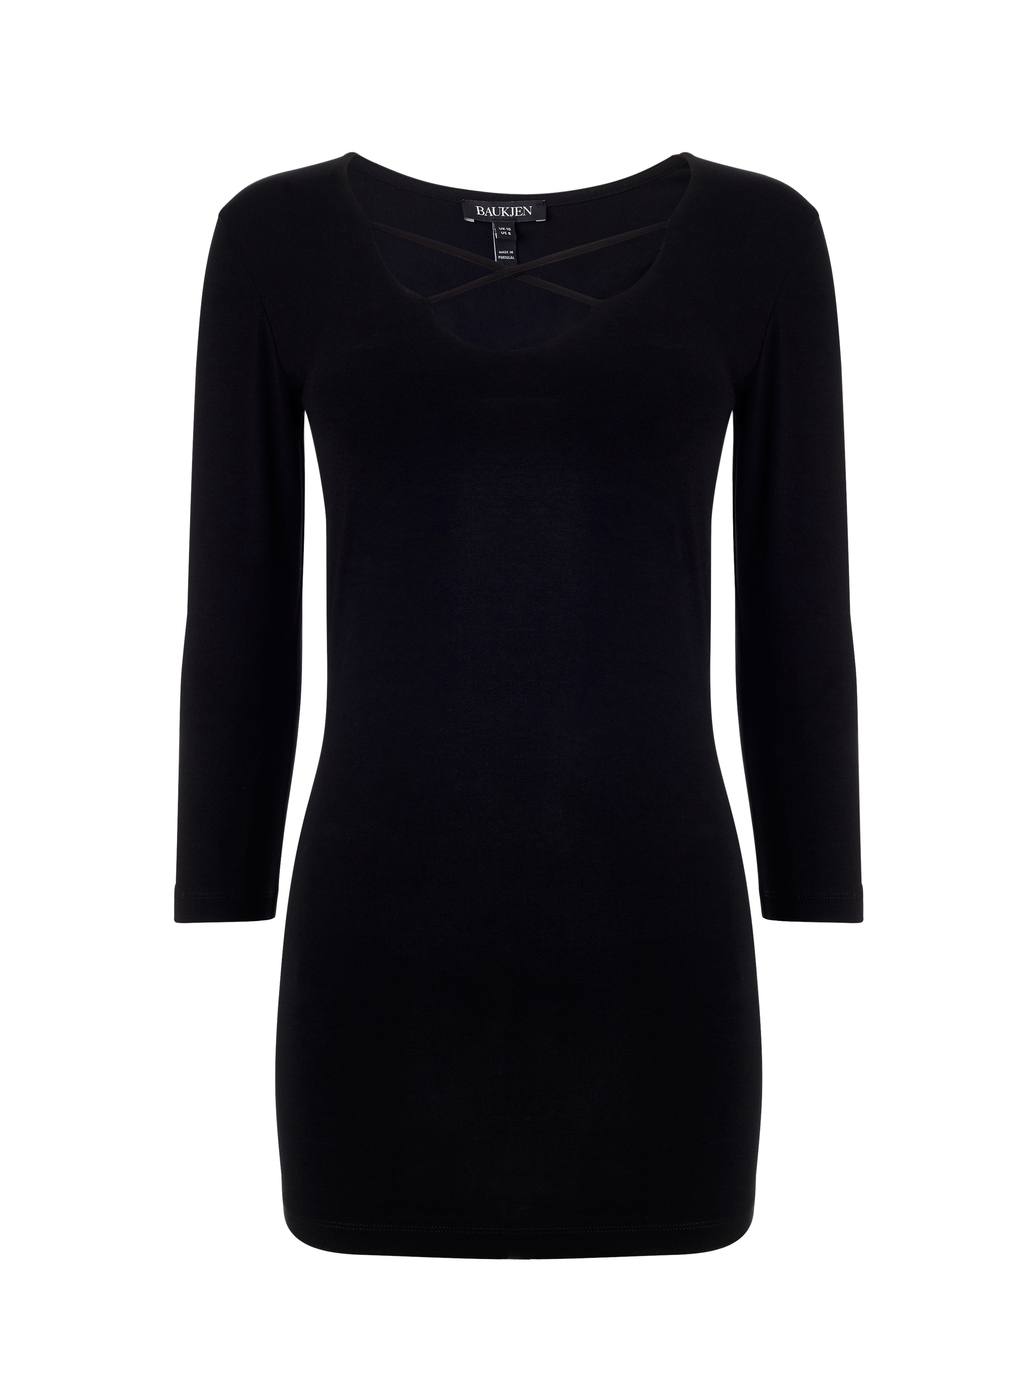 Womenswear Revesby Top - neckline: round neck; pattern: plain; length: below the bottom; style: t-shirt; predominant colour: black; occasions: casual, creative work; fibres: cotton - stretch; fit: body skimming; sleeve length: 3/4 length; sleeve style: standard; texture group: jersey - clingy; pattern type: fabric; season: a/w 2015; wardrobe: basic